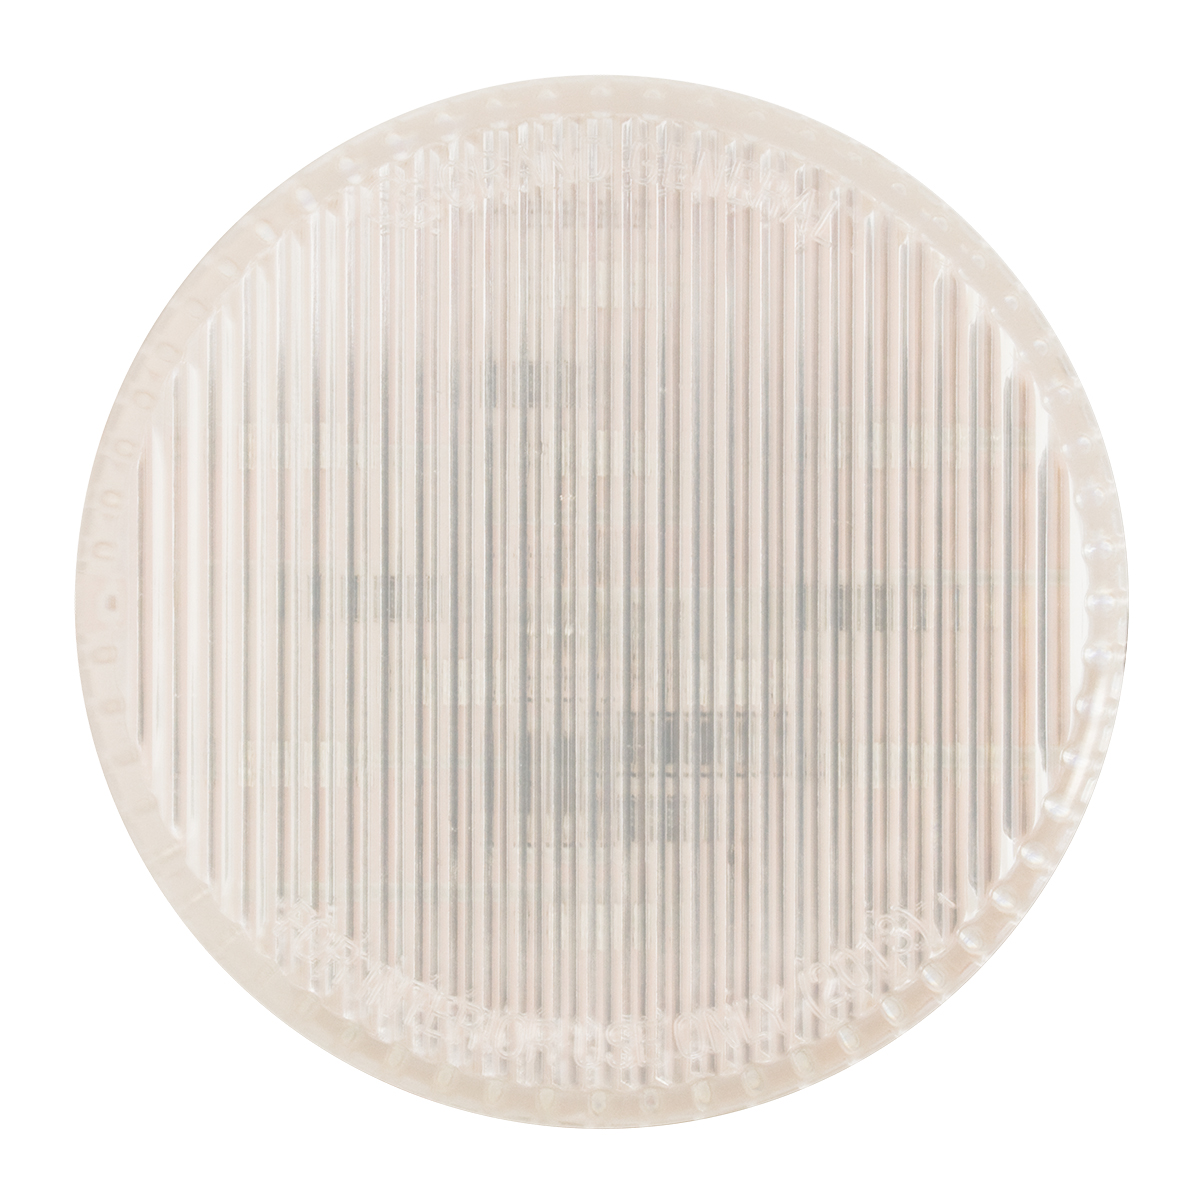 """75991 2-1/2"""" Round Dual Function Light"""